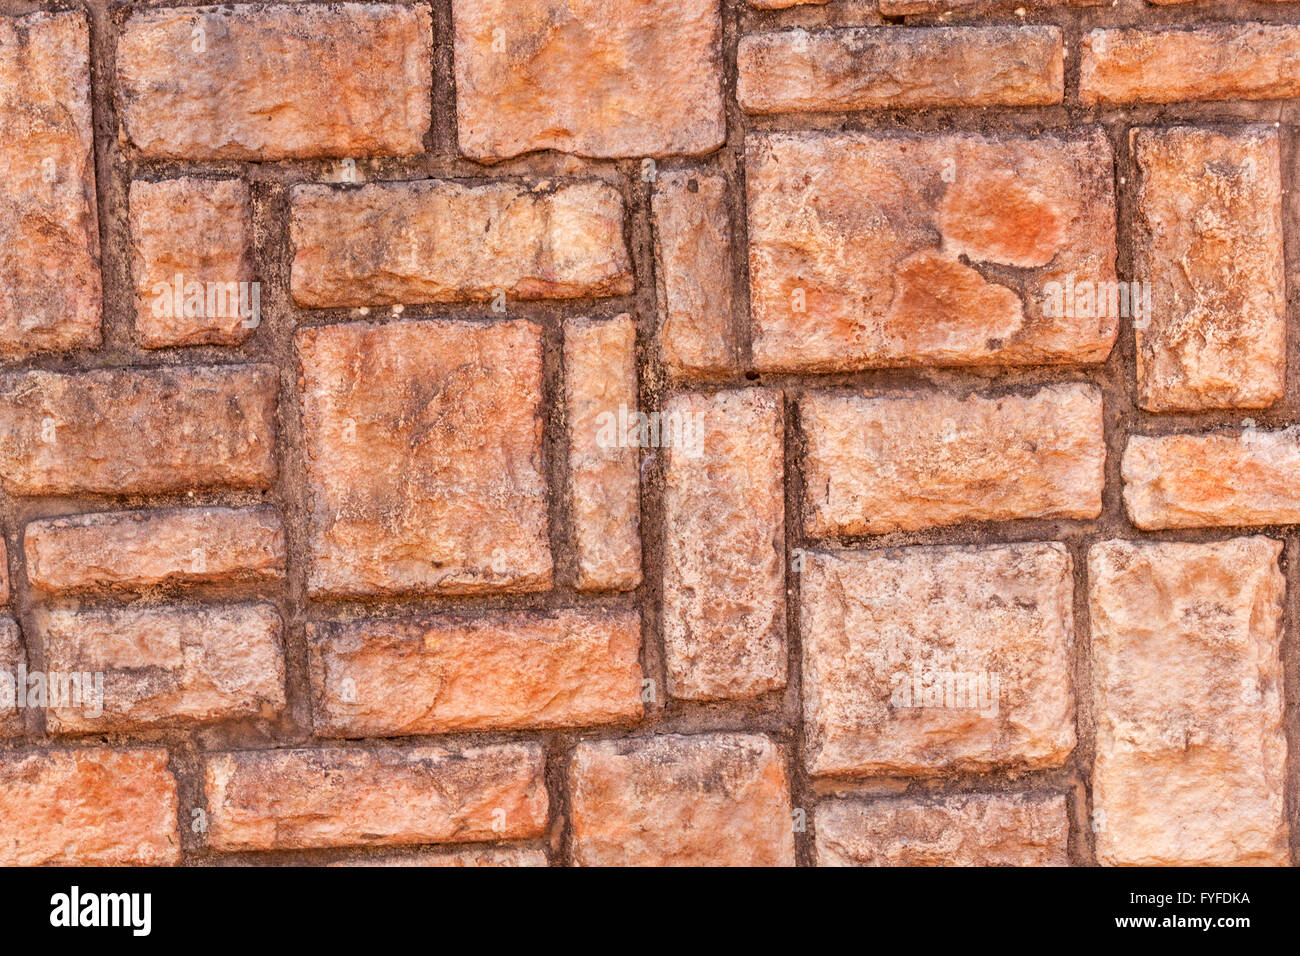 Closeup Of Red Brick Patterns And Textures On Concrete Wall Stock